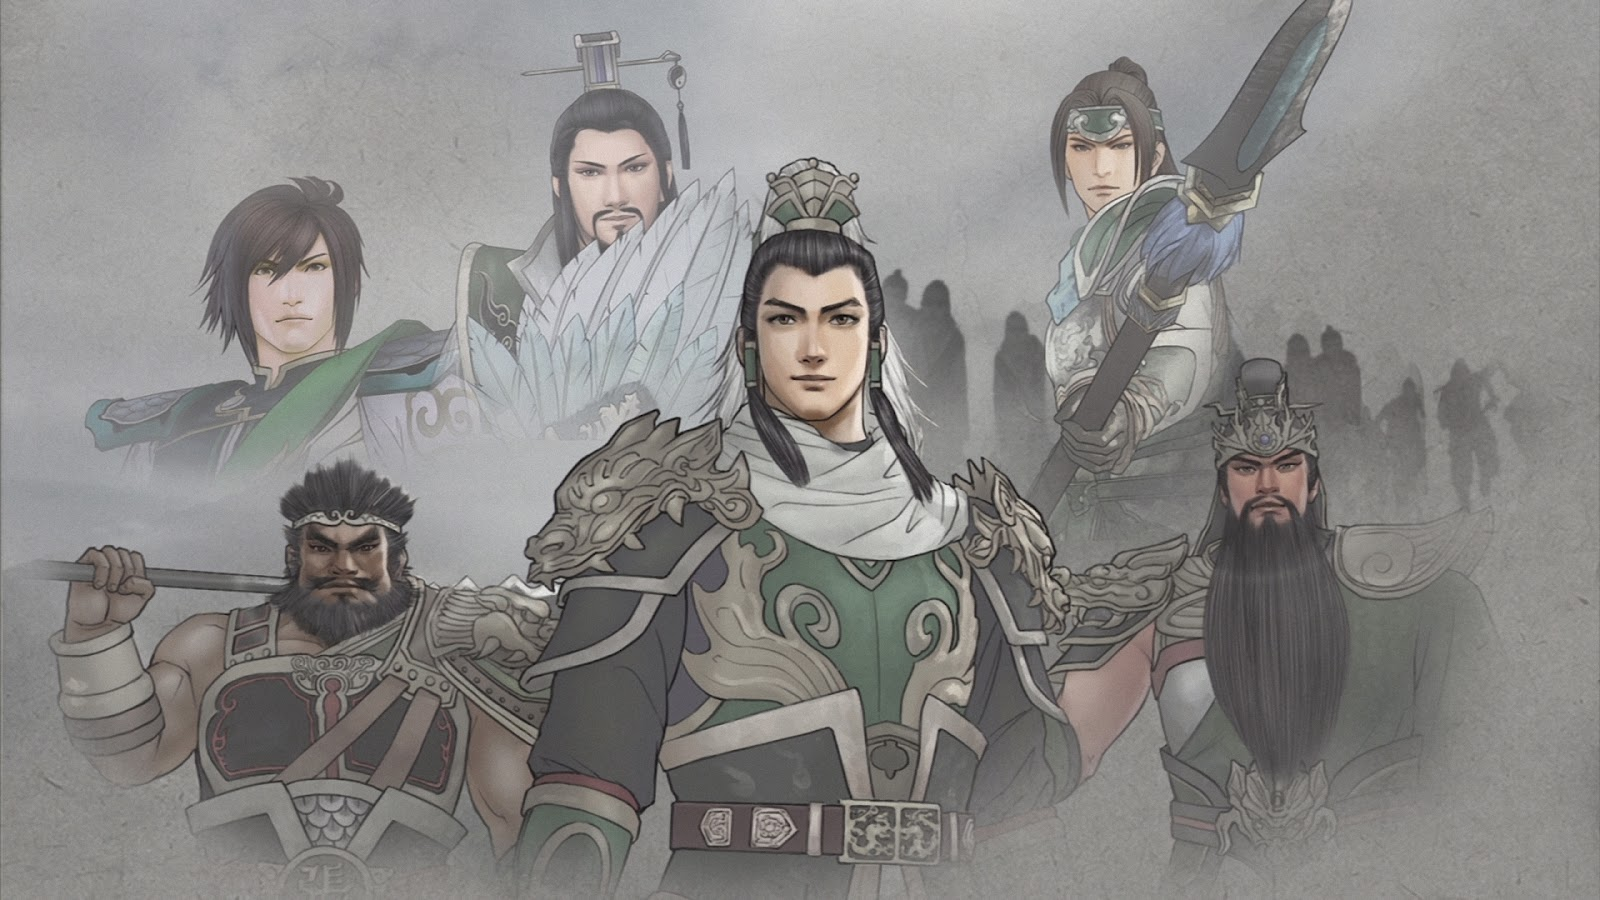 http://4.bp.blogspot.com/-__XokHNslgo/UBVUsXvK0HI/AAAAAAAAFB0/U__lk94LiX8/s1600/dynasty+warriors+7+wallpapers+2.jpg